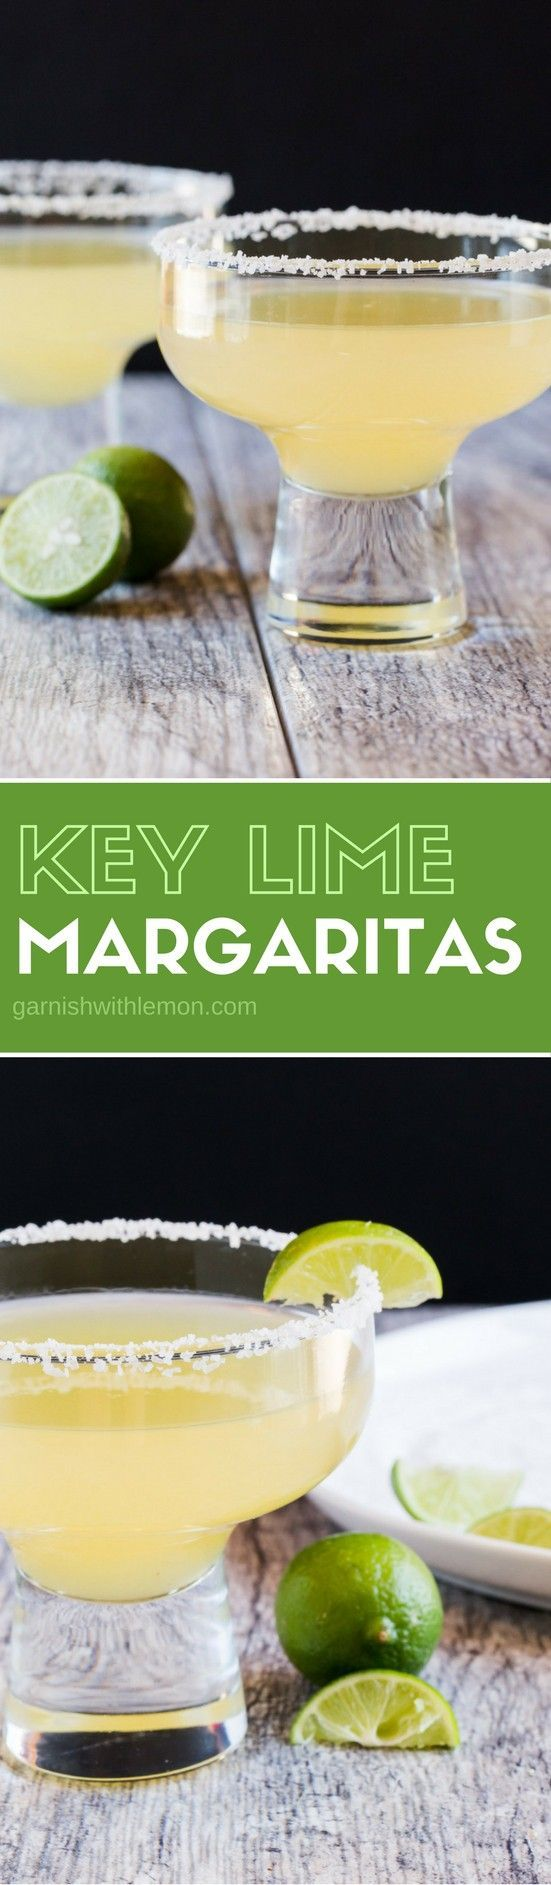 You only need 4 ingredients to be transported to the tropics! These Key Lime Margaritas are our new favorite tequila drink! #margaritas #tequila #cocktails #drinks